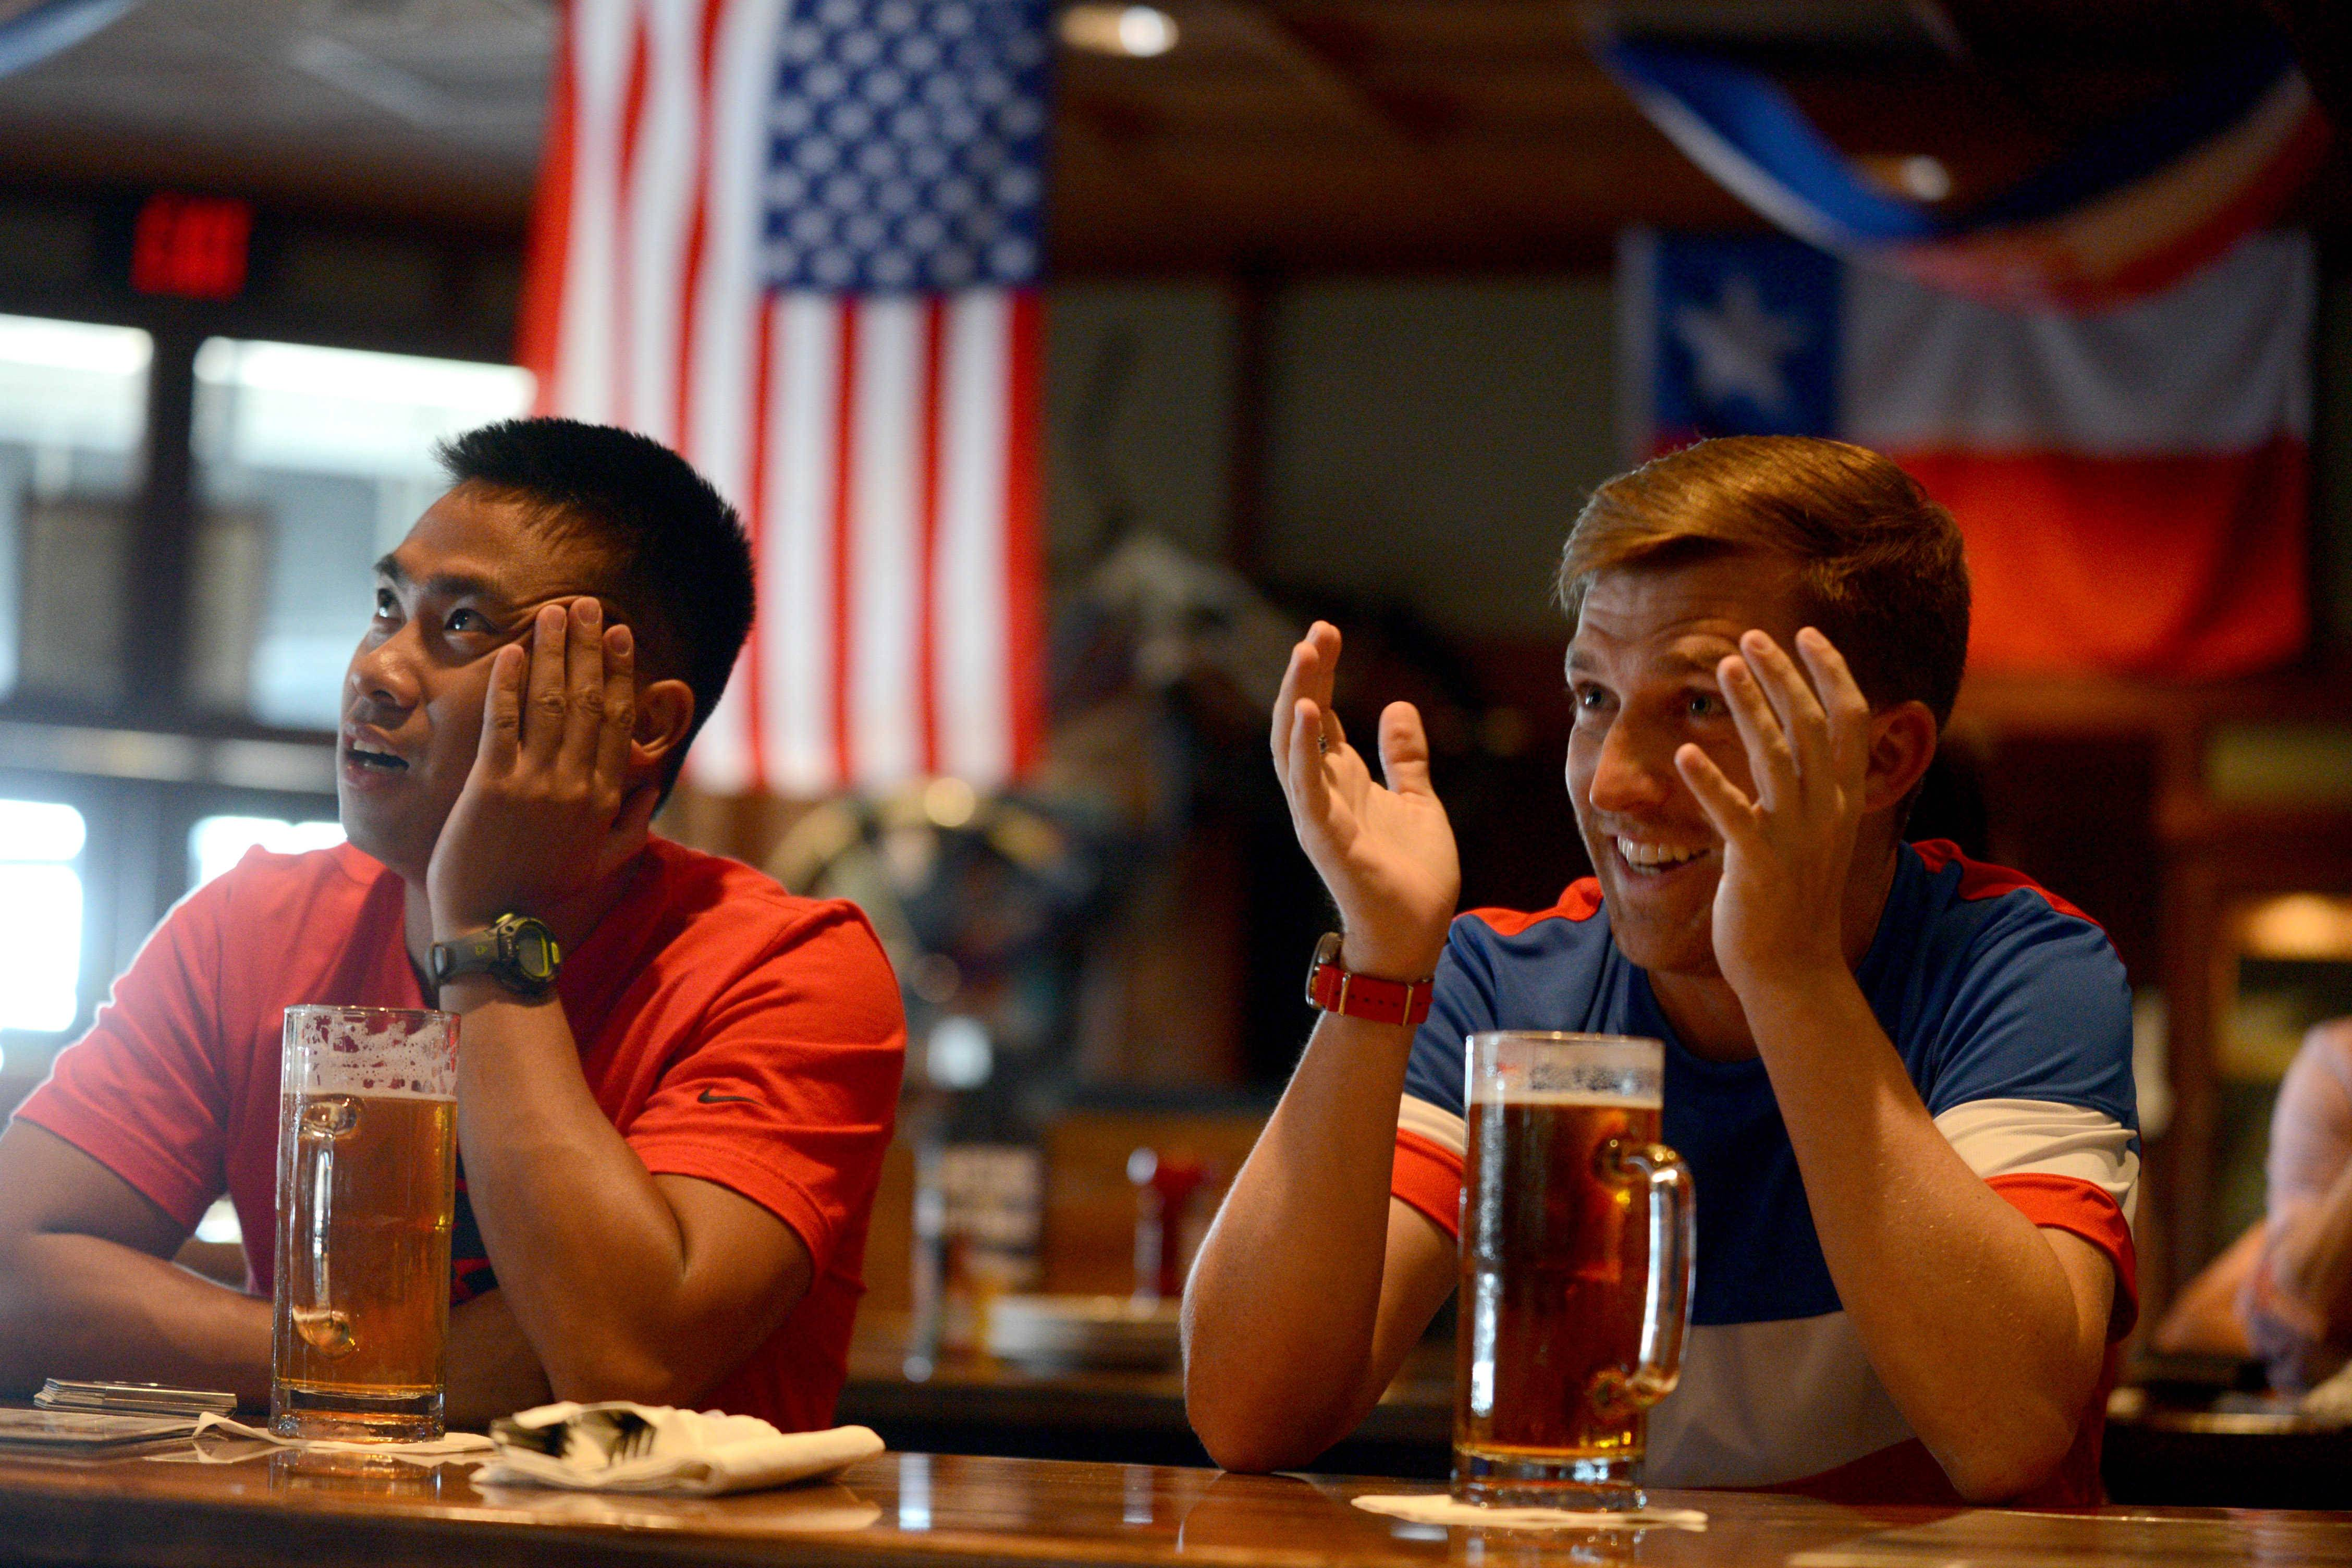 Jonathan Acosta, left, of Addison, and Steve Jenkins of Hoffman Estates don't like the news of Clint Dempsey's injury.